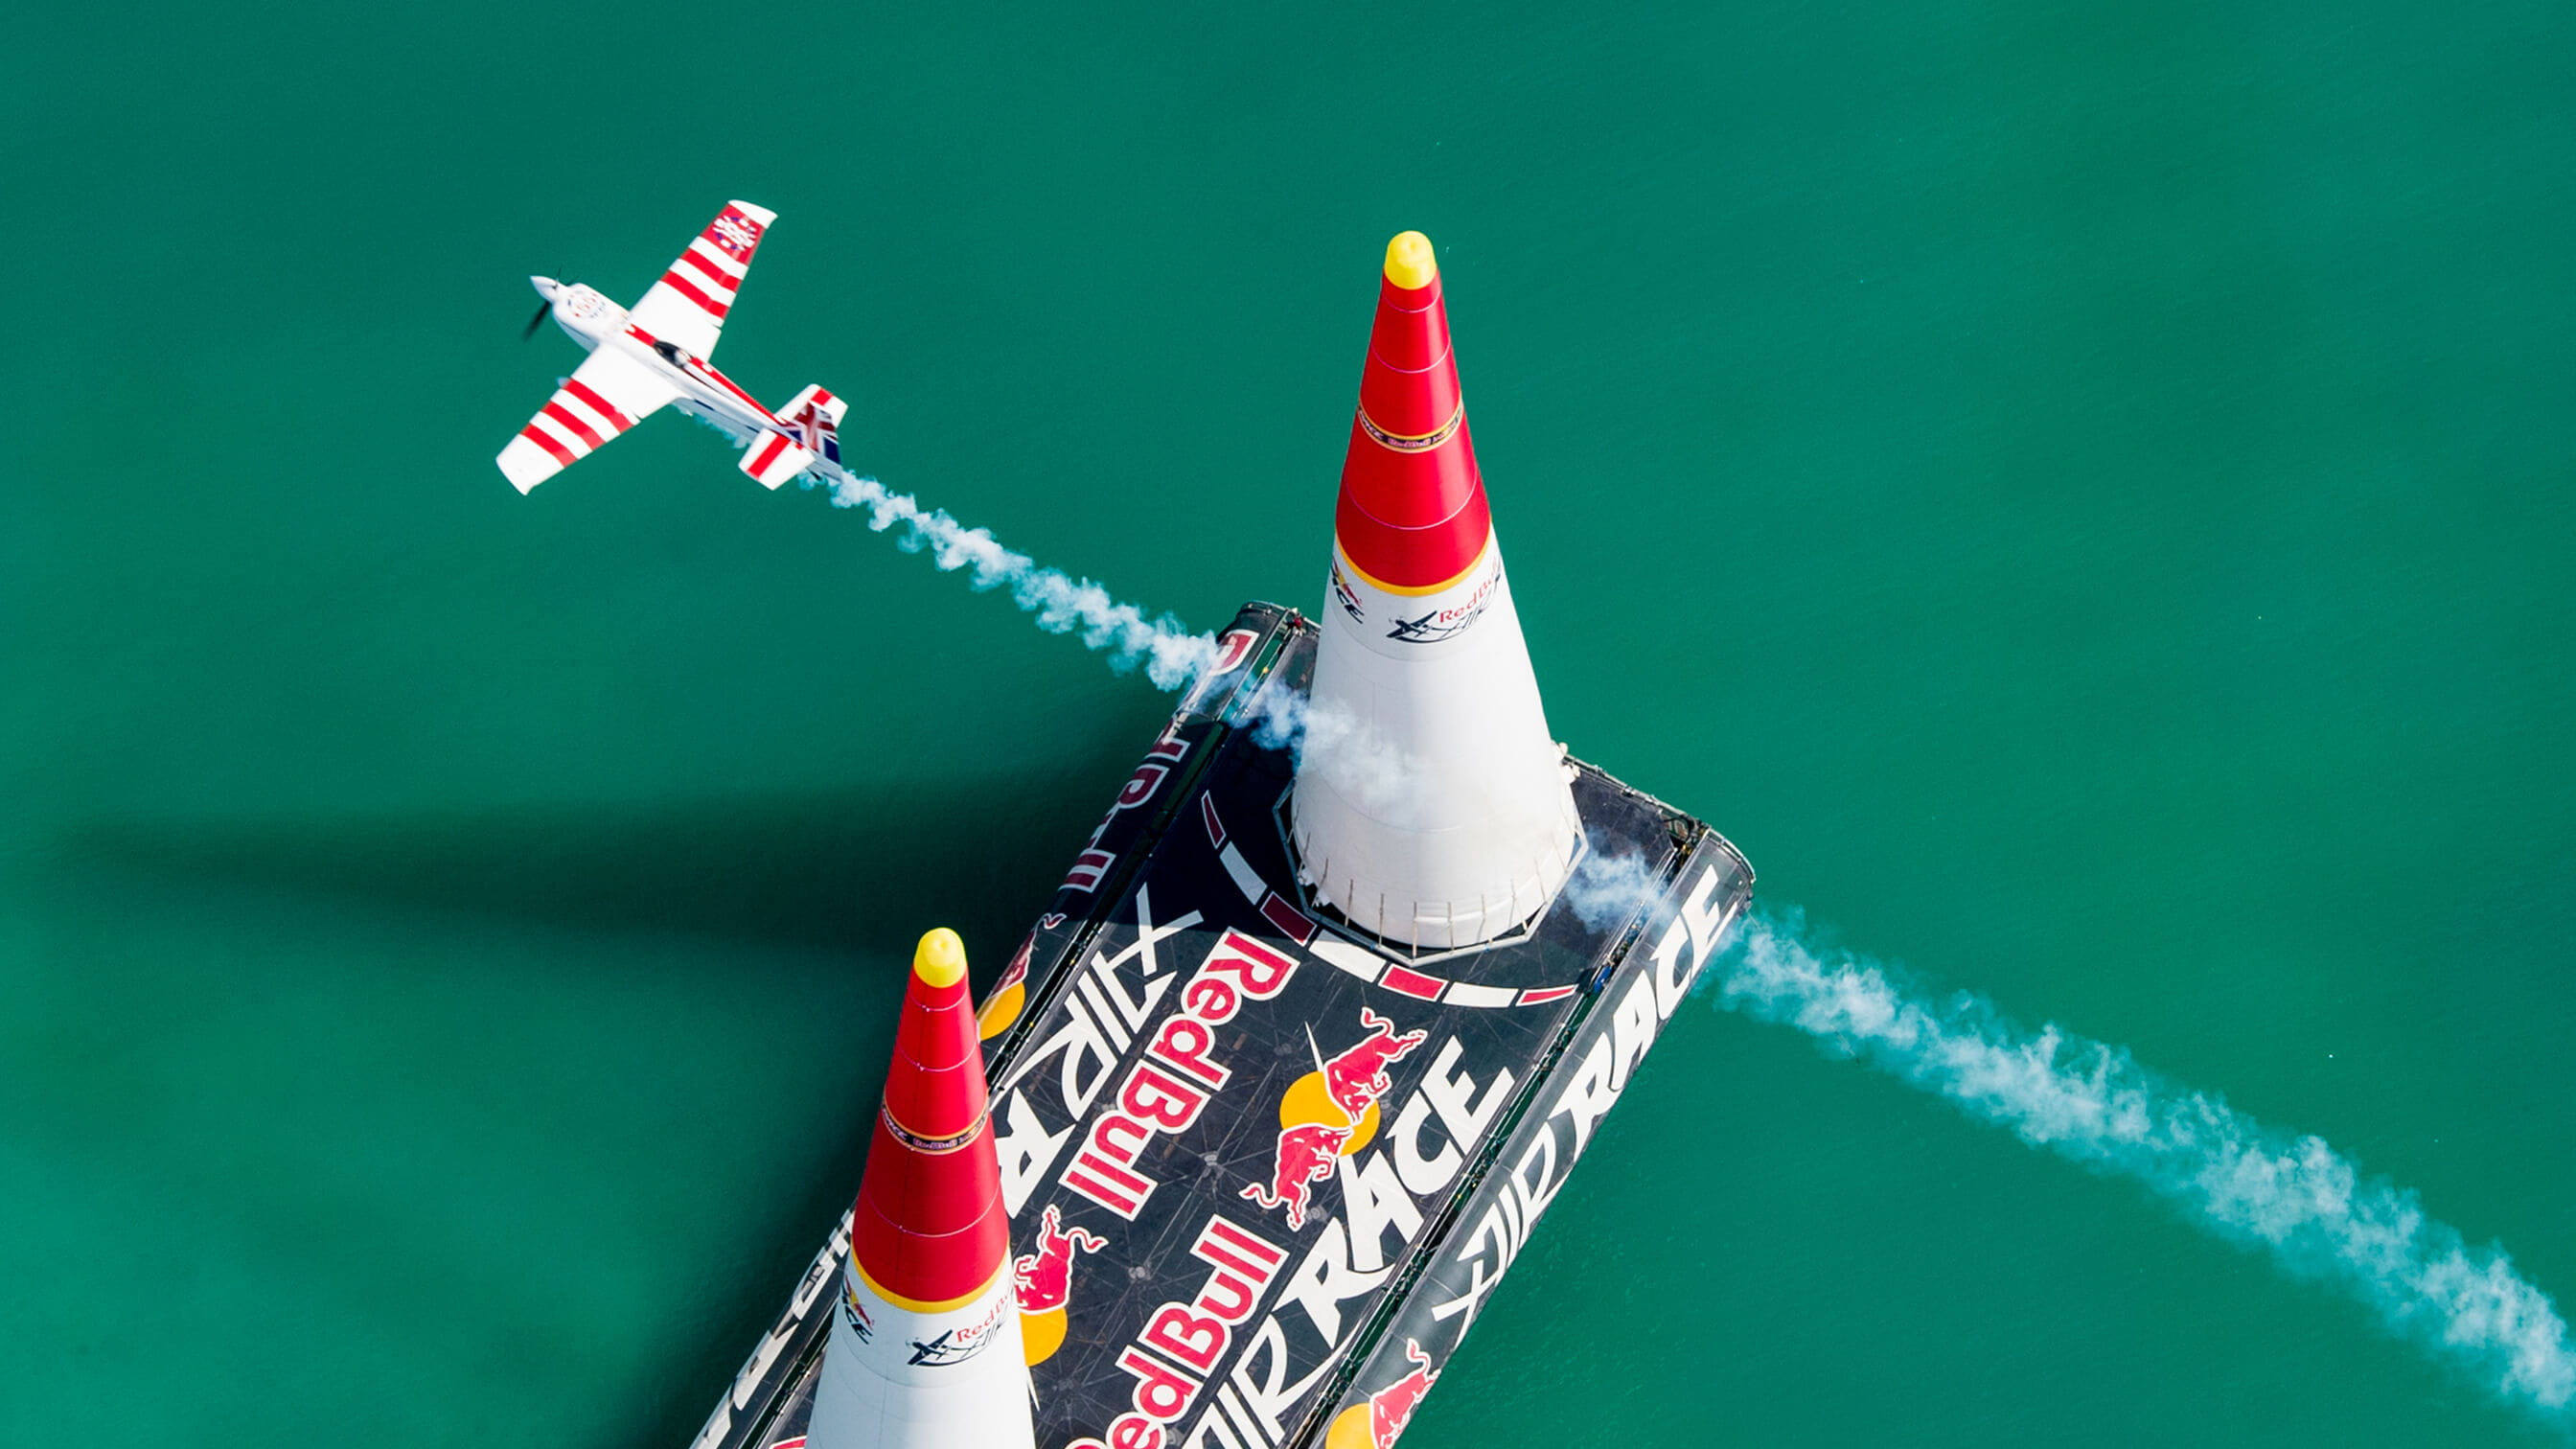 Powering the Red Bull Air Race World Championship in Japan